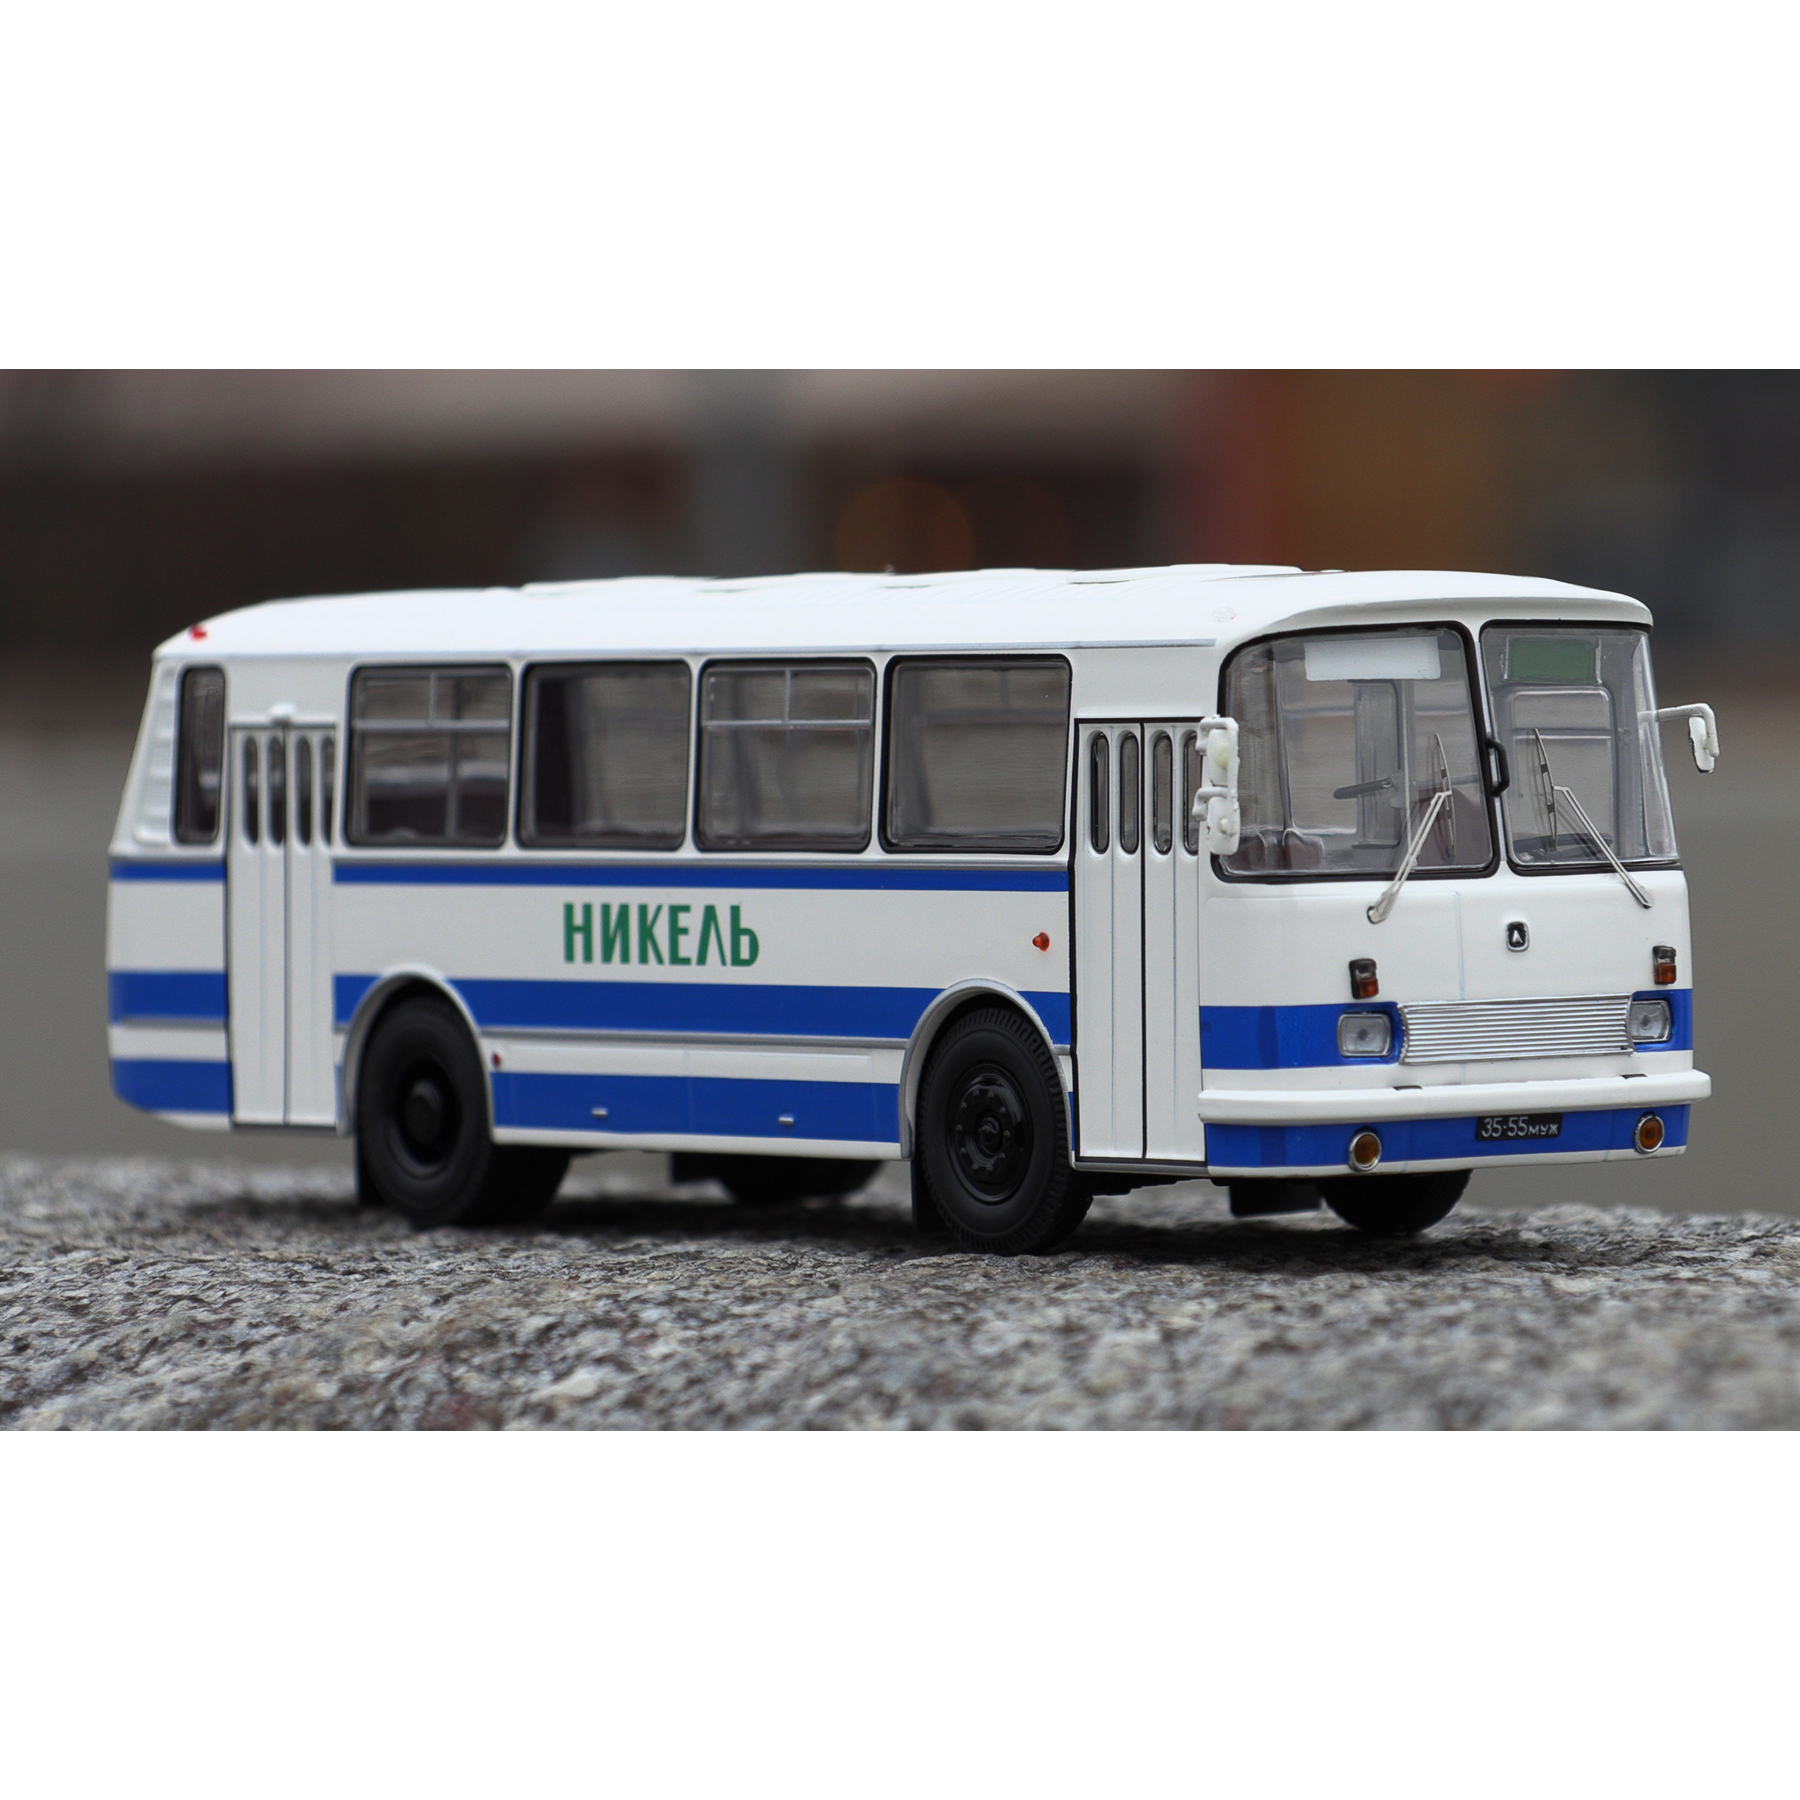 Scale Model 699R White Yellow 1:43 Classicbus Bus Toy Retro Soviet